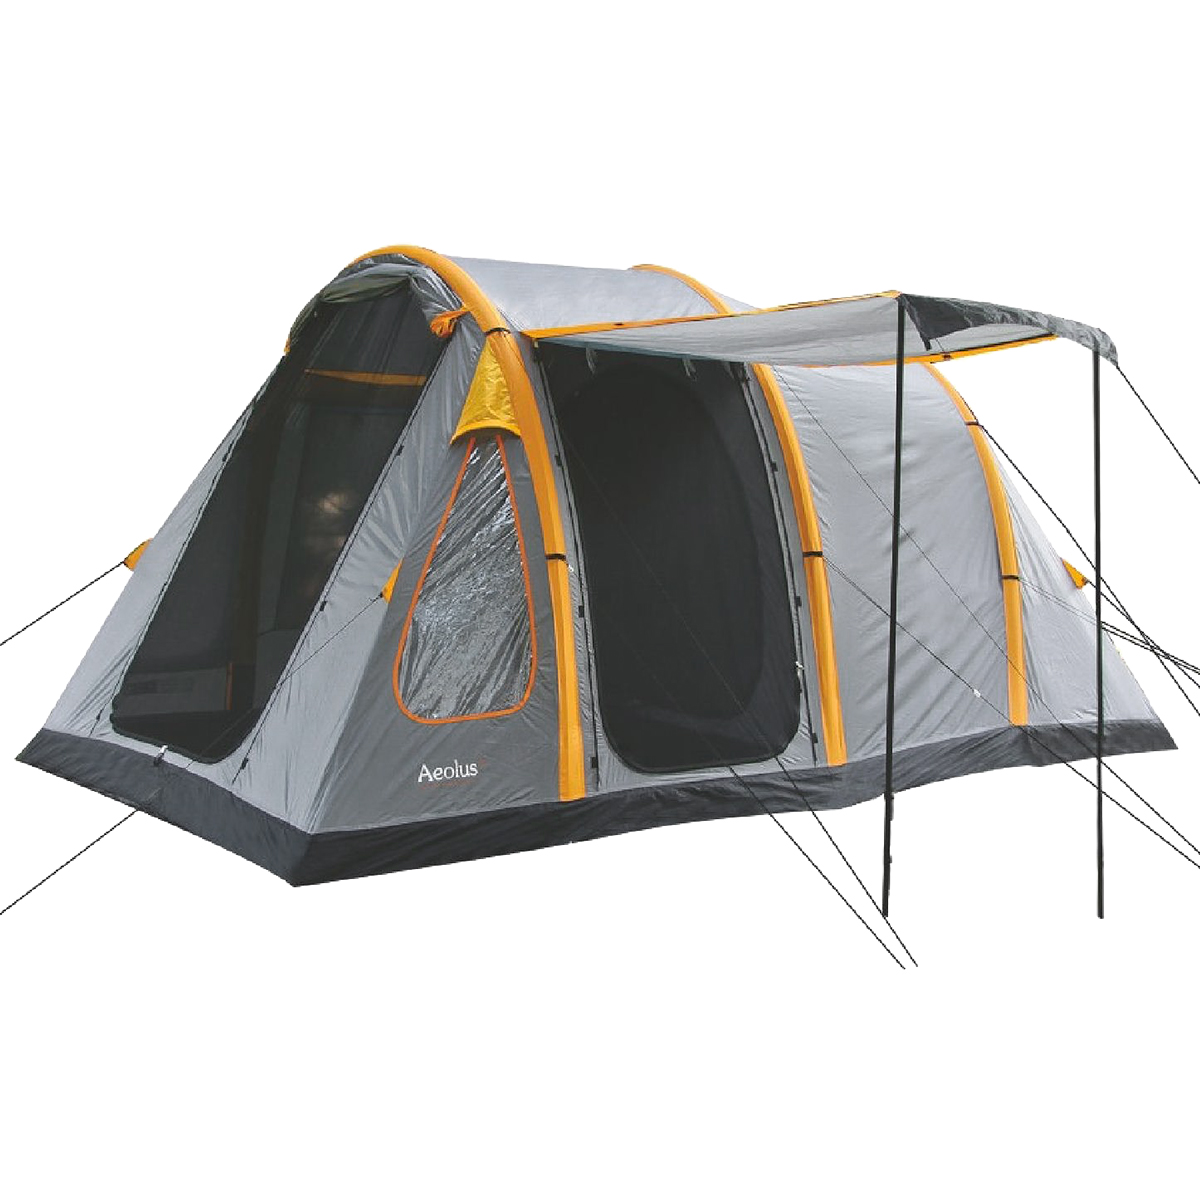 Sentinel Highlander Aeolus 4 Person Large Family Inflatable Tunnel C&ing Tent Rock Grey  sc 1 st  eBay & Highlander Aeolus 4 Person Large Family Inflatable Tunnel Camping ...